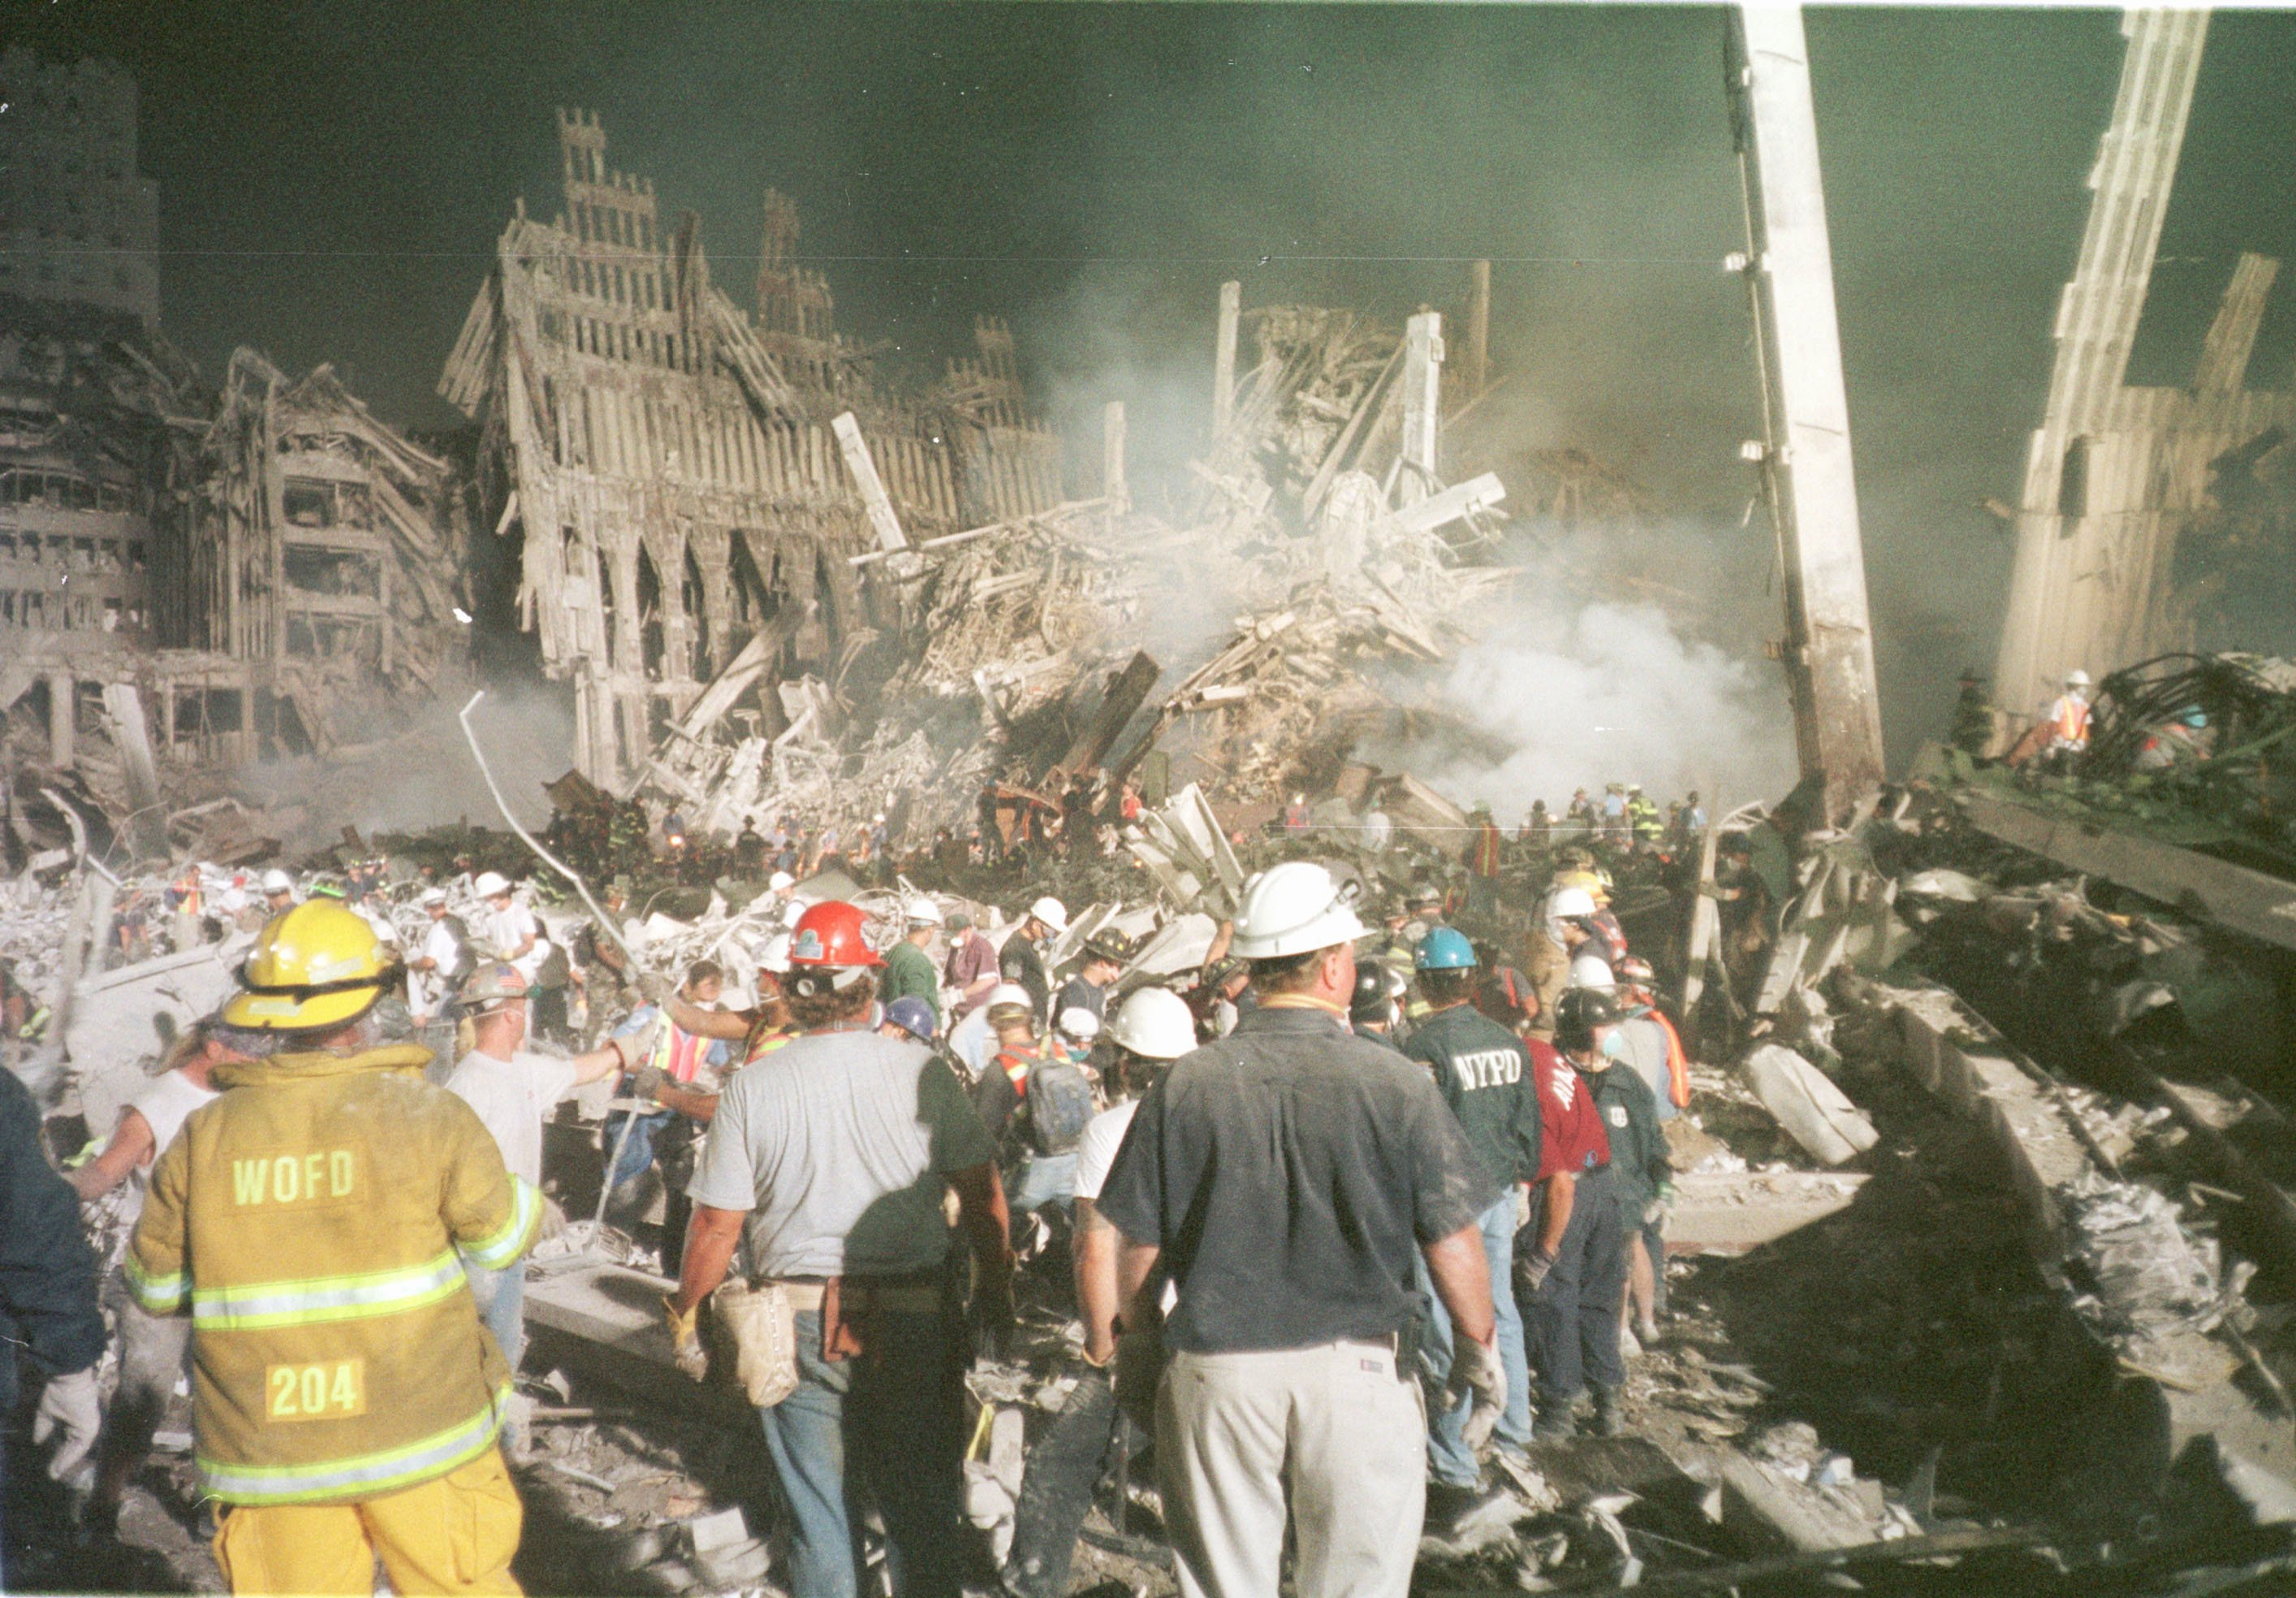 dozens of first responders stand in the dusty remains of the World Trade Center